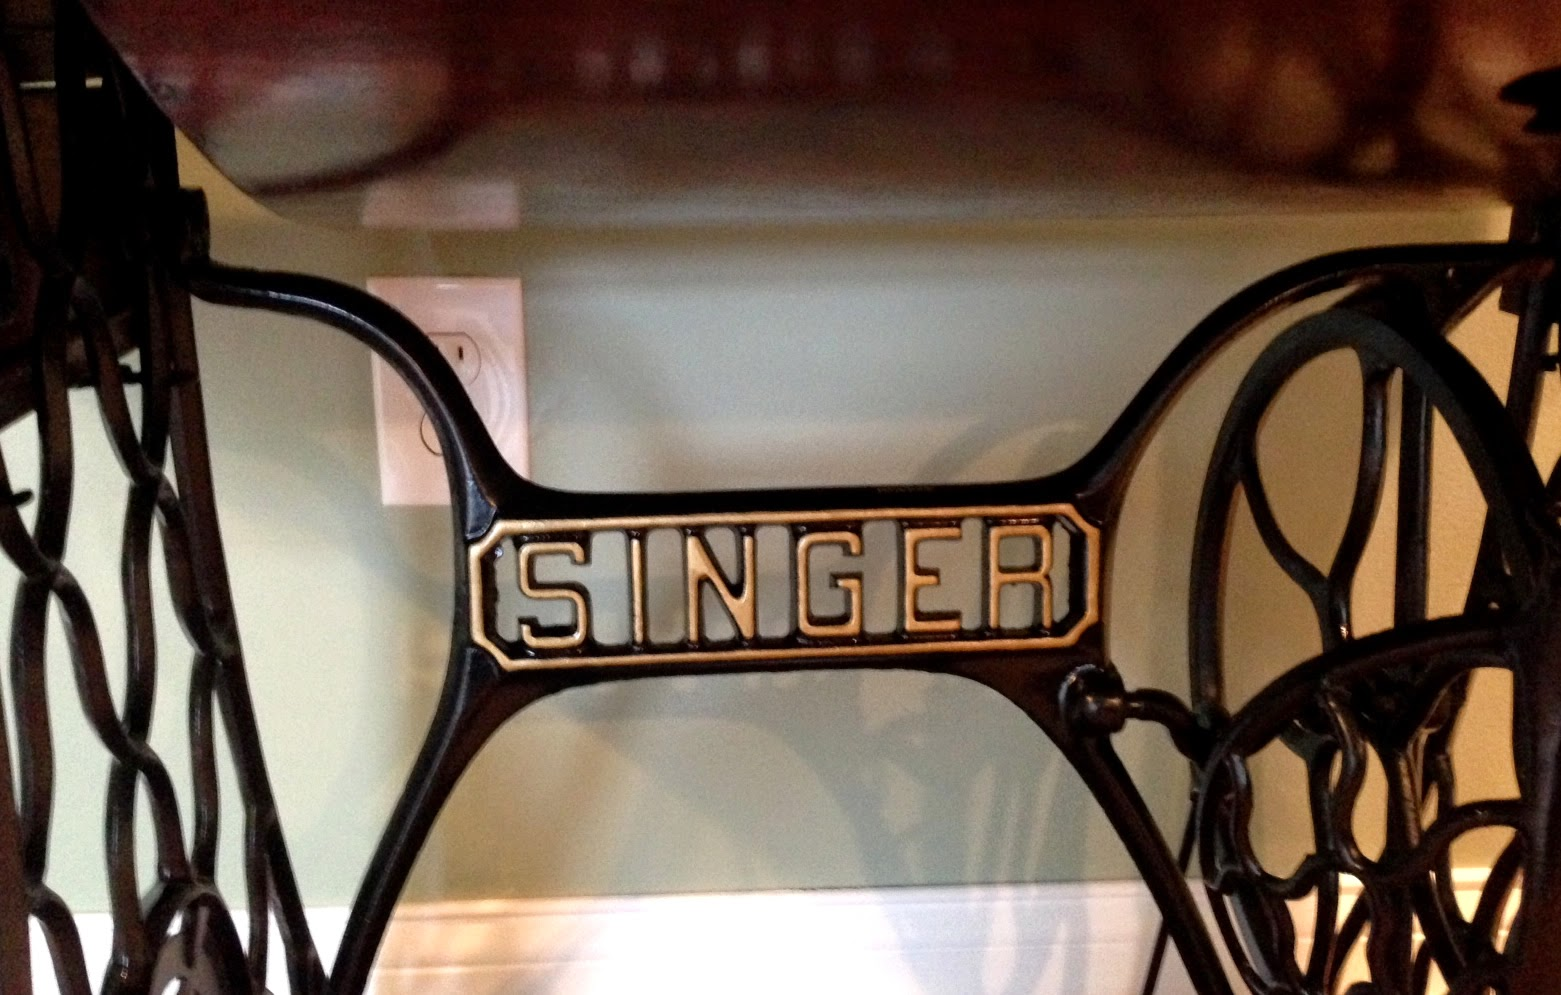 restored singer sewing machine - linaandvi.blogspot.com - michigan